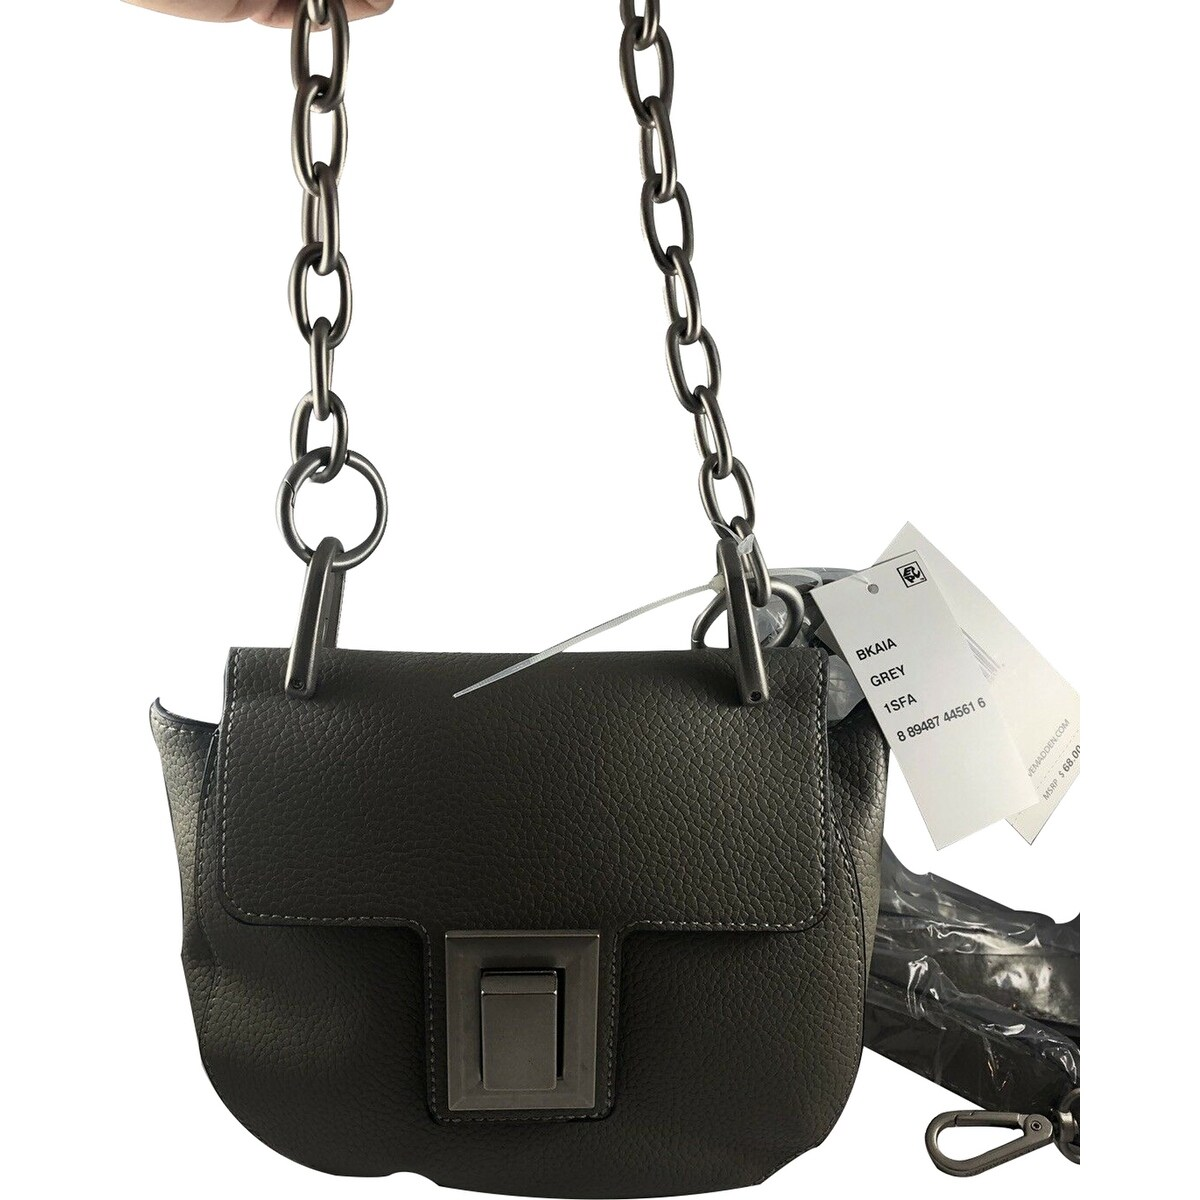 c241b6bbc6 Shop Steve Madden Kaia Chain Detail Saddle Small Crossbody NWT Grey - Free  Shipping Today - Overstock - 28424402